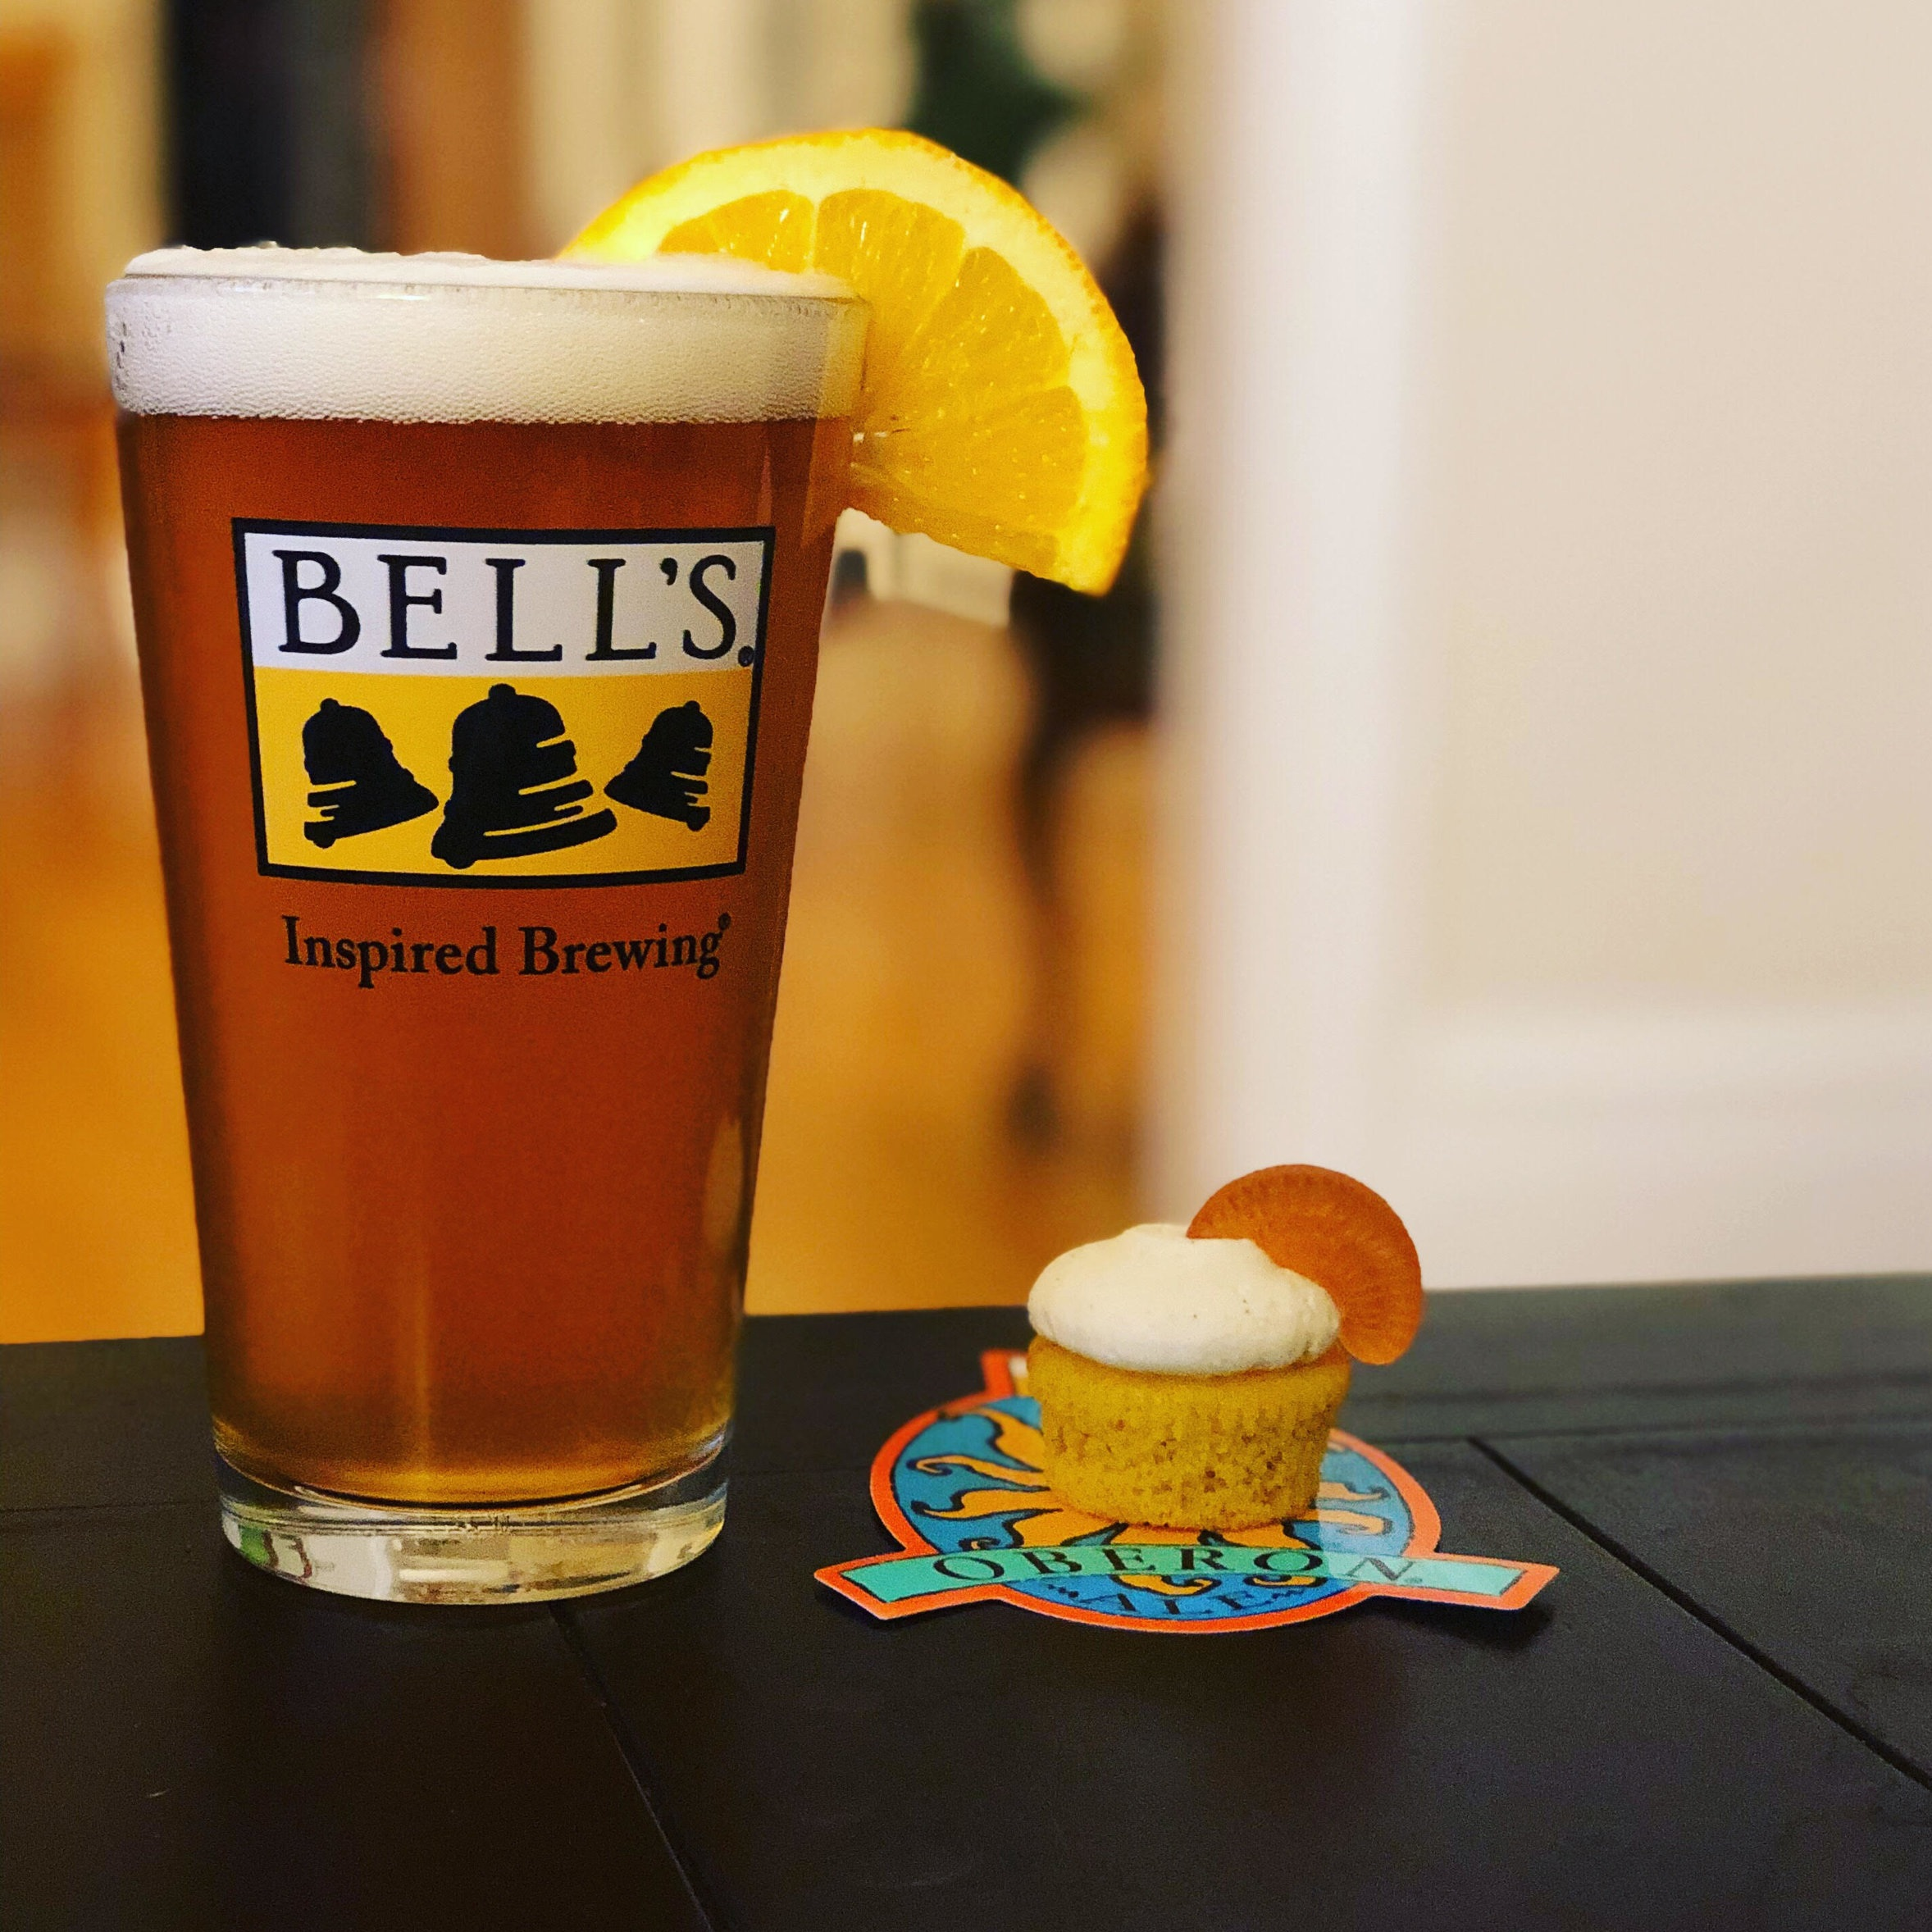 A glass of beer beside a small cupcake.